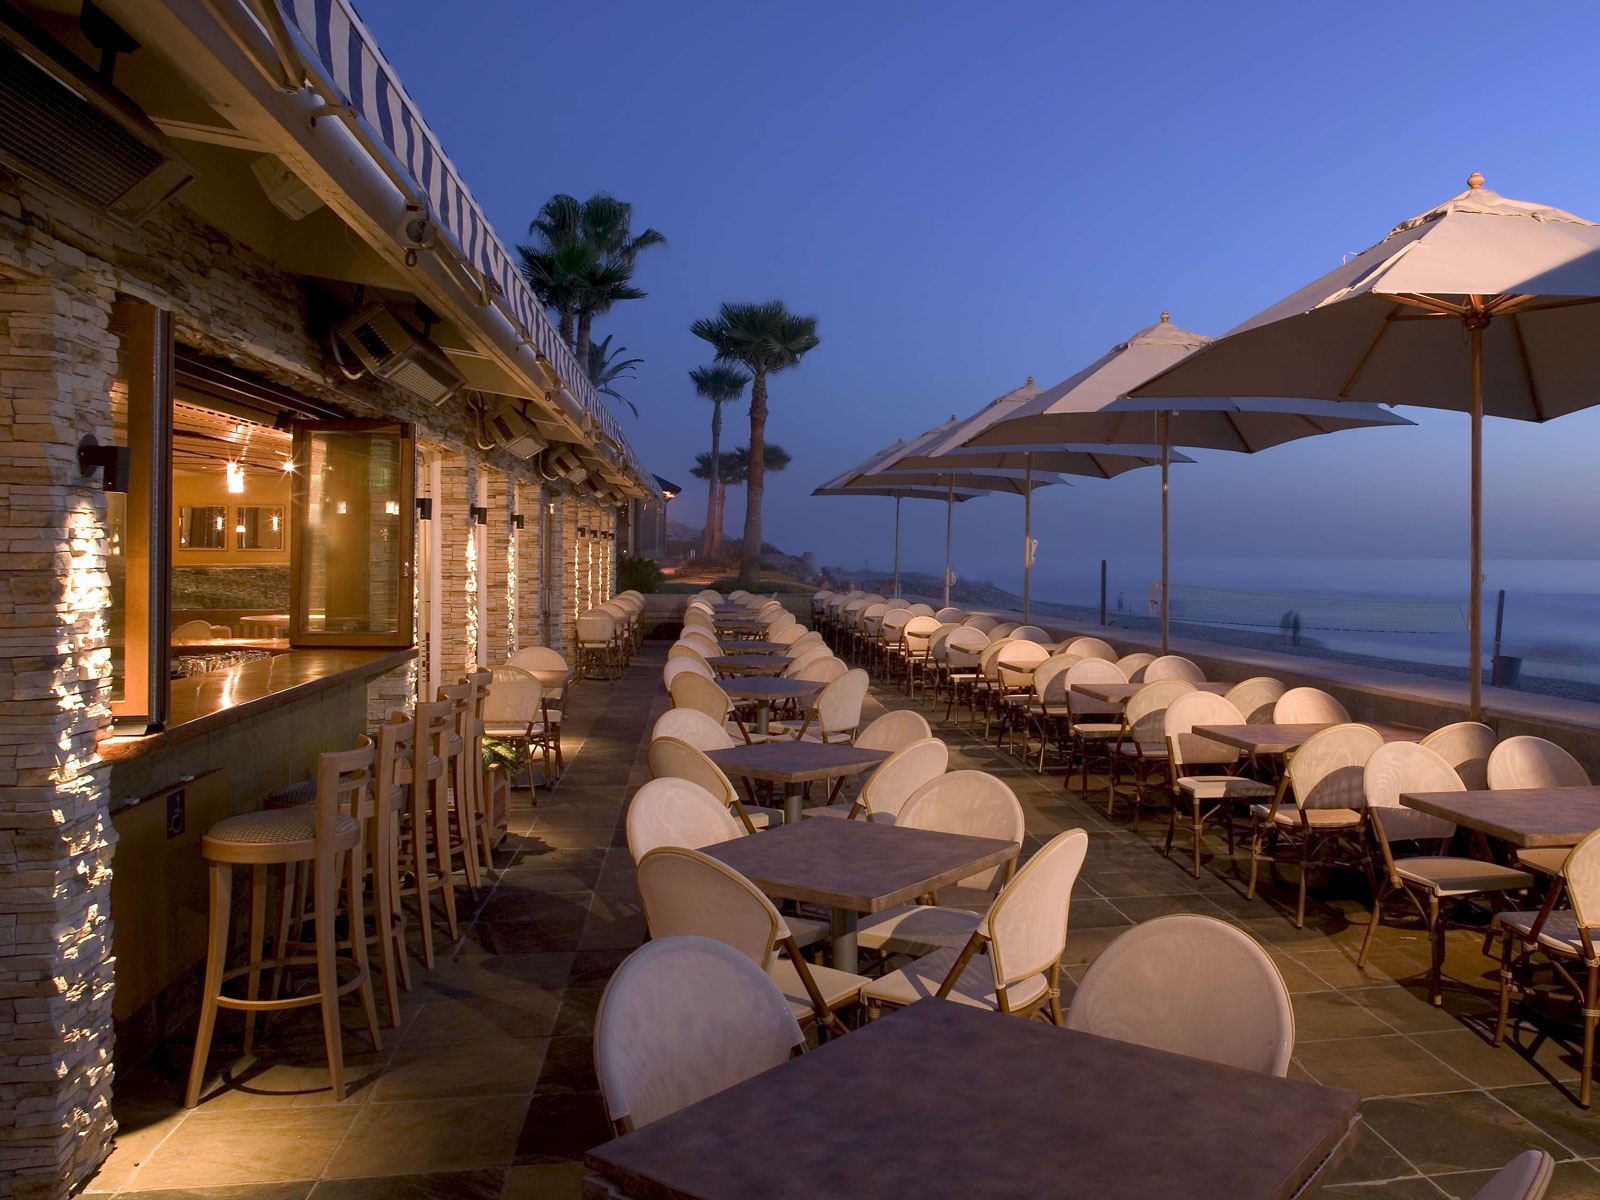 The 100 Best Restaurants for Outdoor Dining in the U.S., According to OpenTable